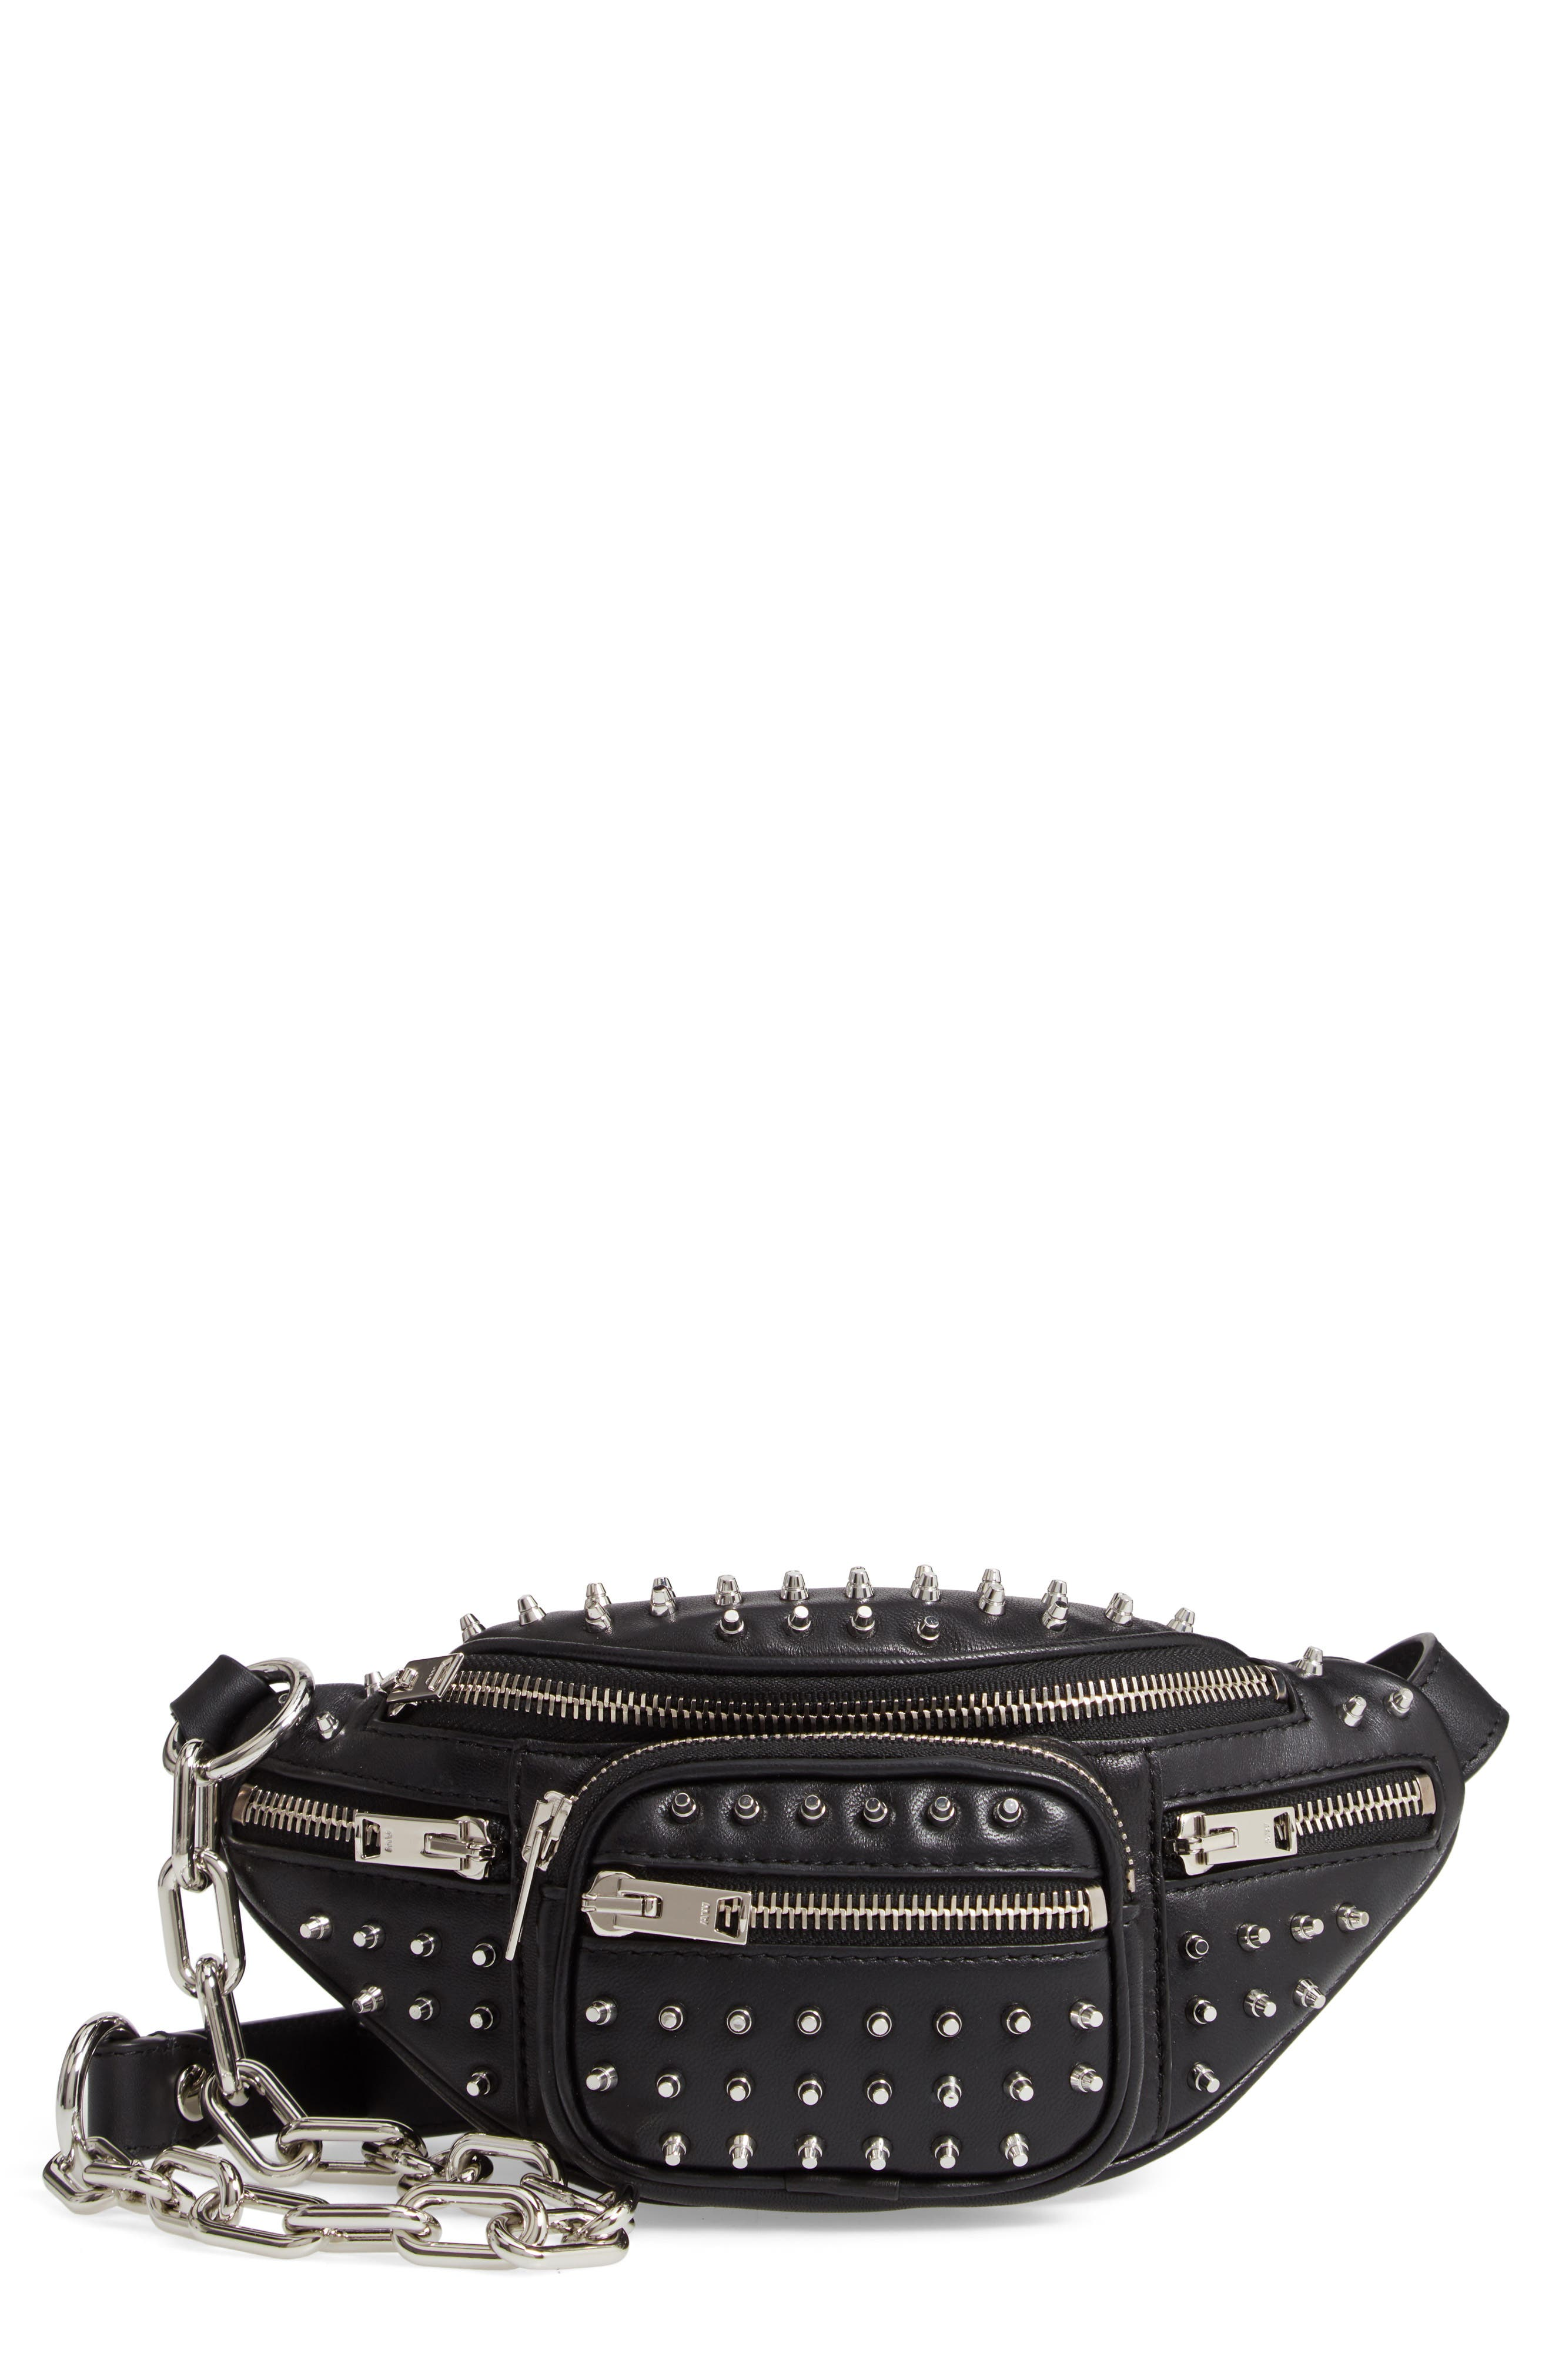 Attica Studded Lambskin Leather Fanny Pack, Main, color, 001